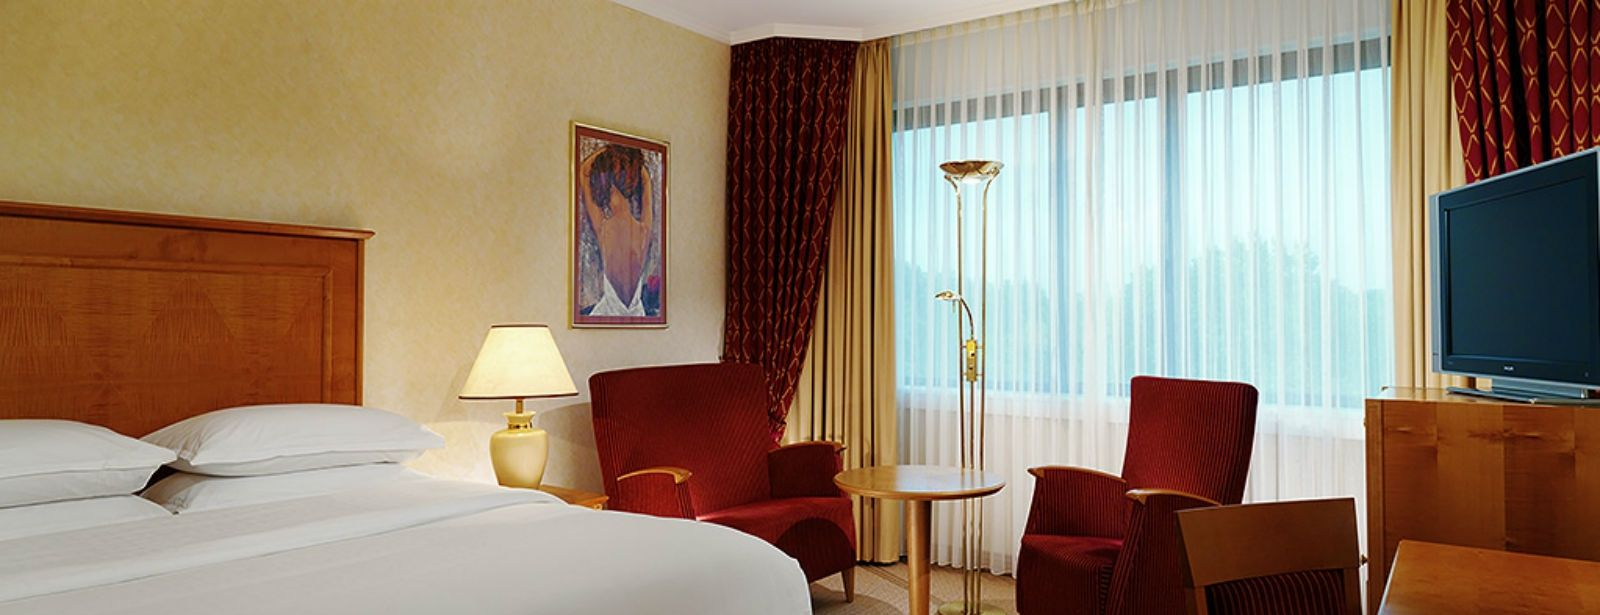 Superior Park View Room | Sheraton Essen Hotel